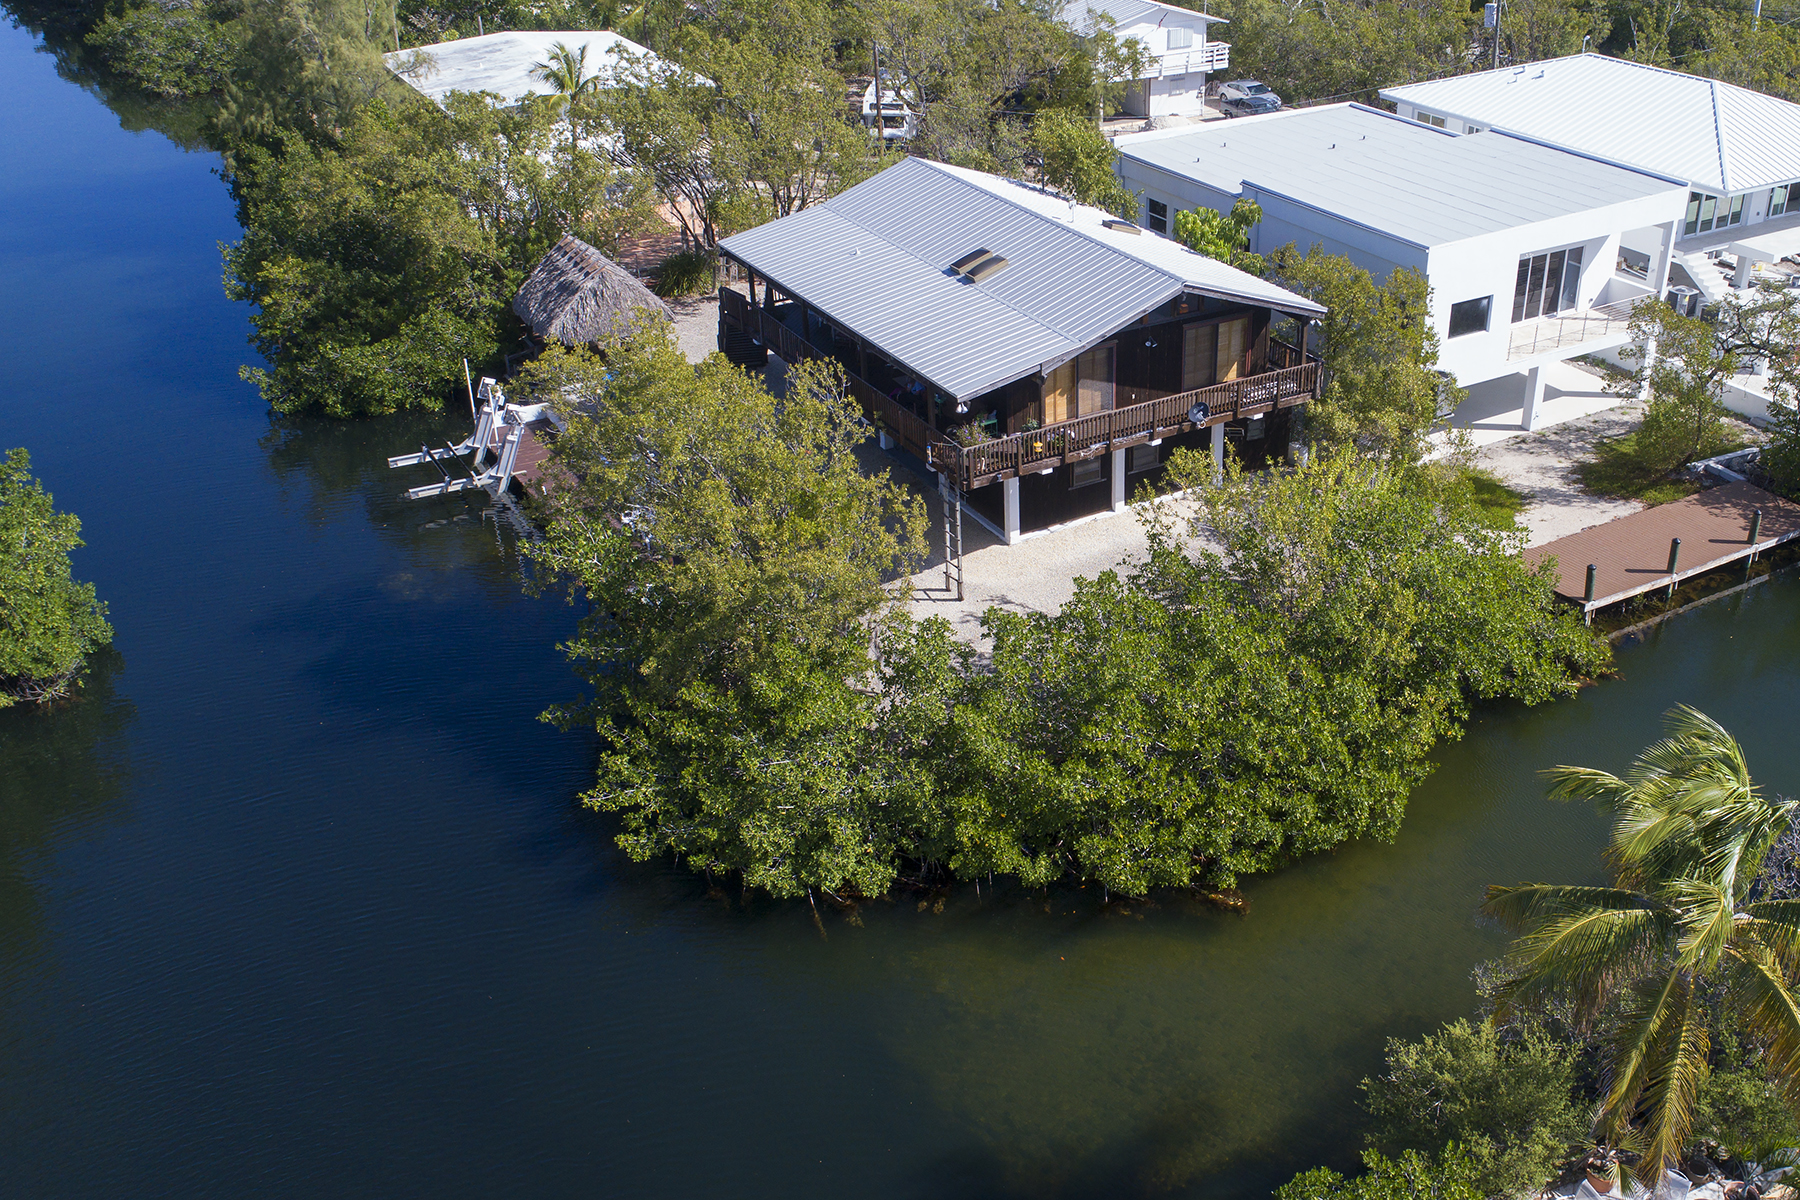 Single Family Home for Sale at Tranquil Island Living 833 Spoonbill Lane Key Largo, Florida, 33037 United States